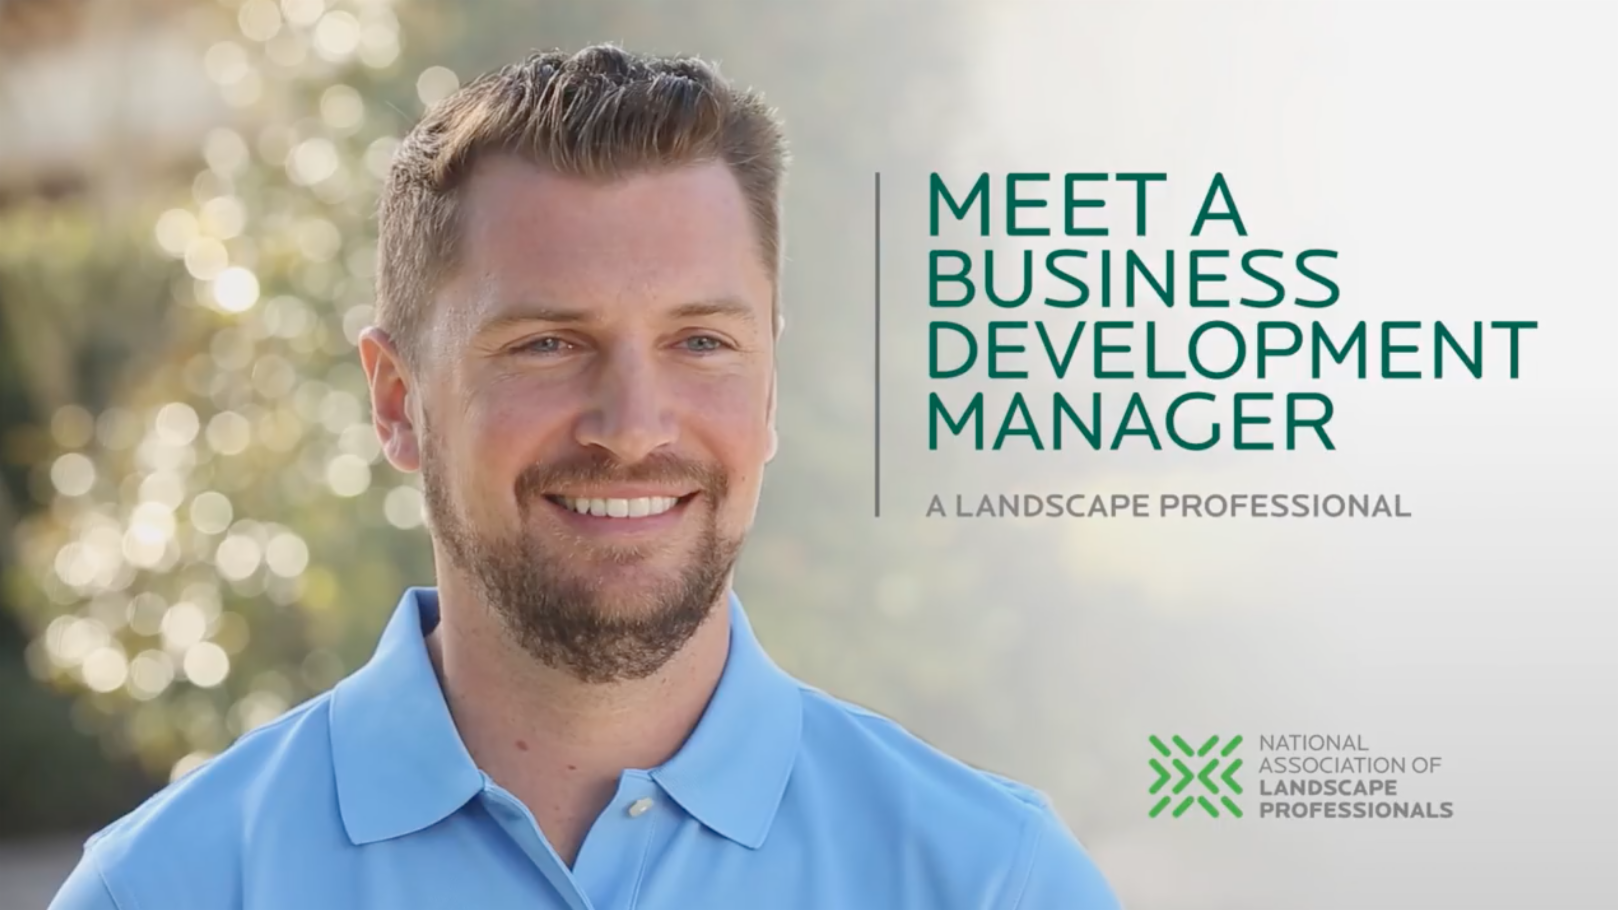 Meet a Business Development Manager - Landscape Industry Testimonial Videos